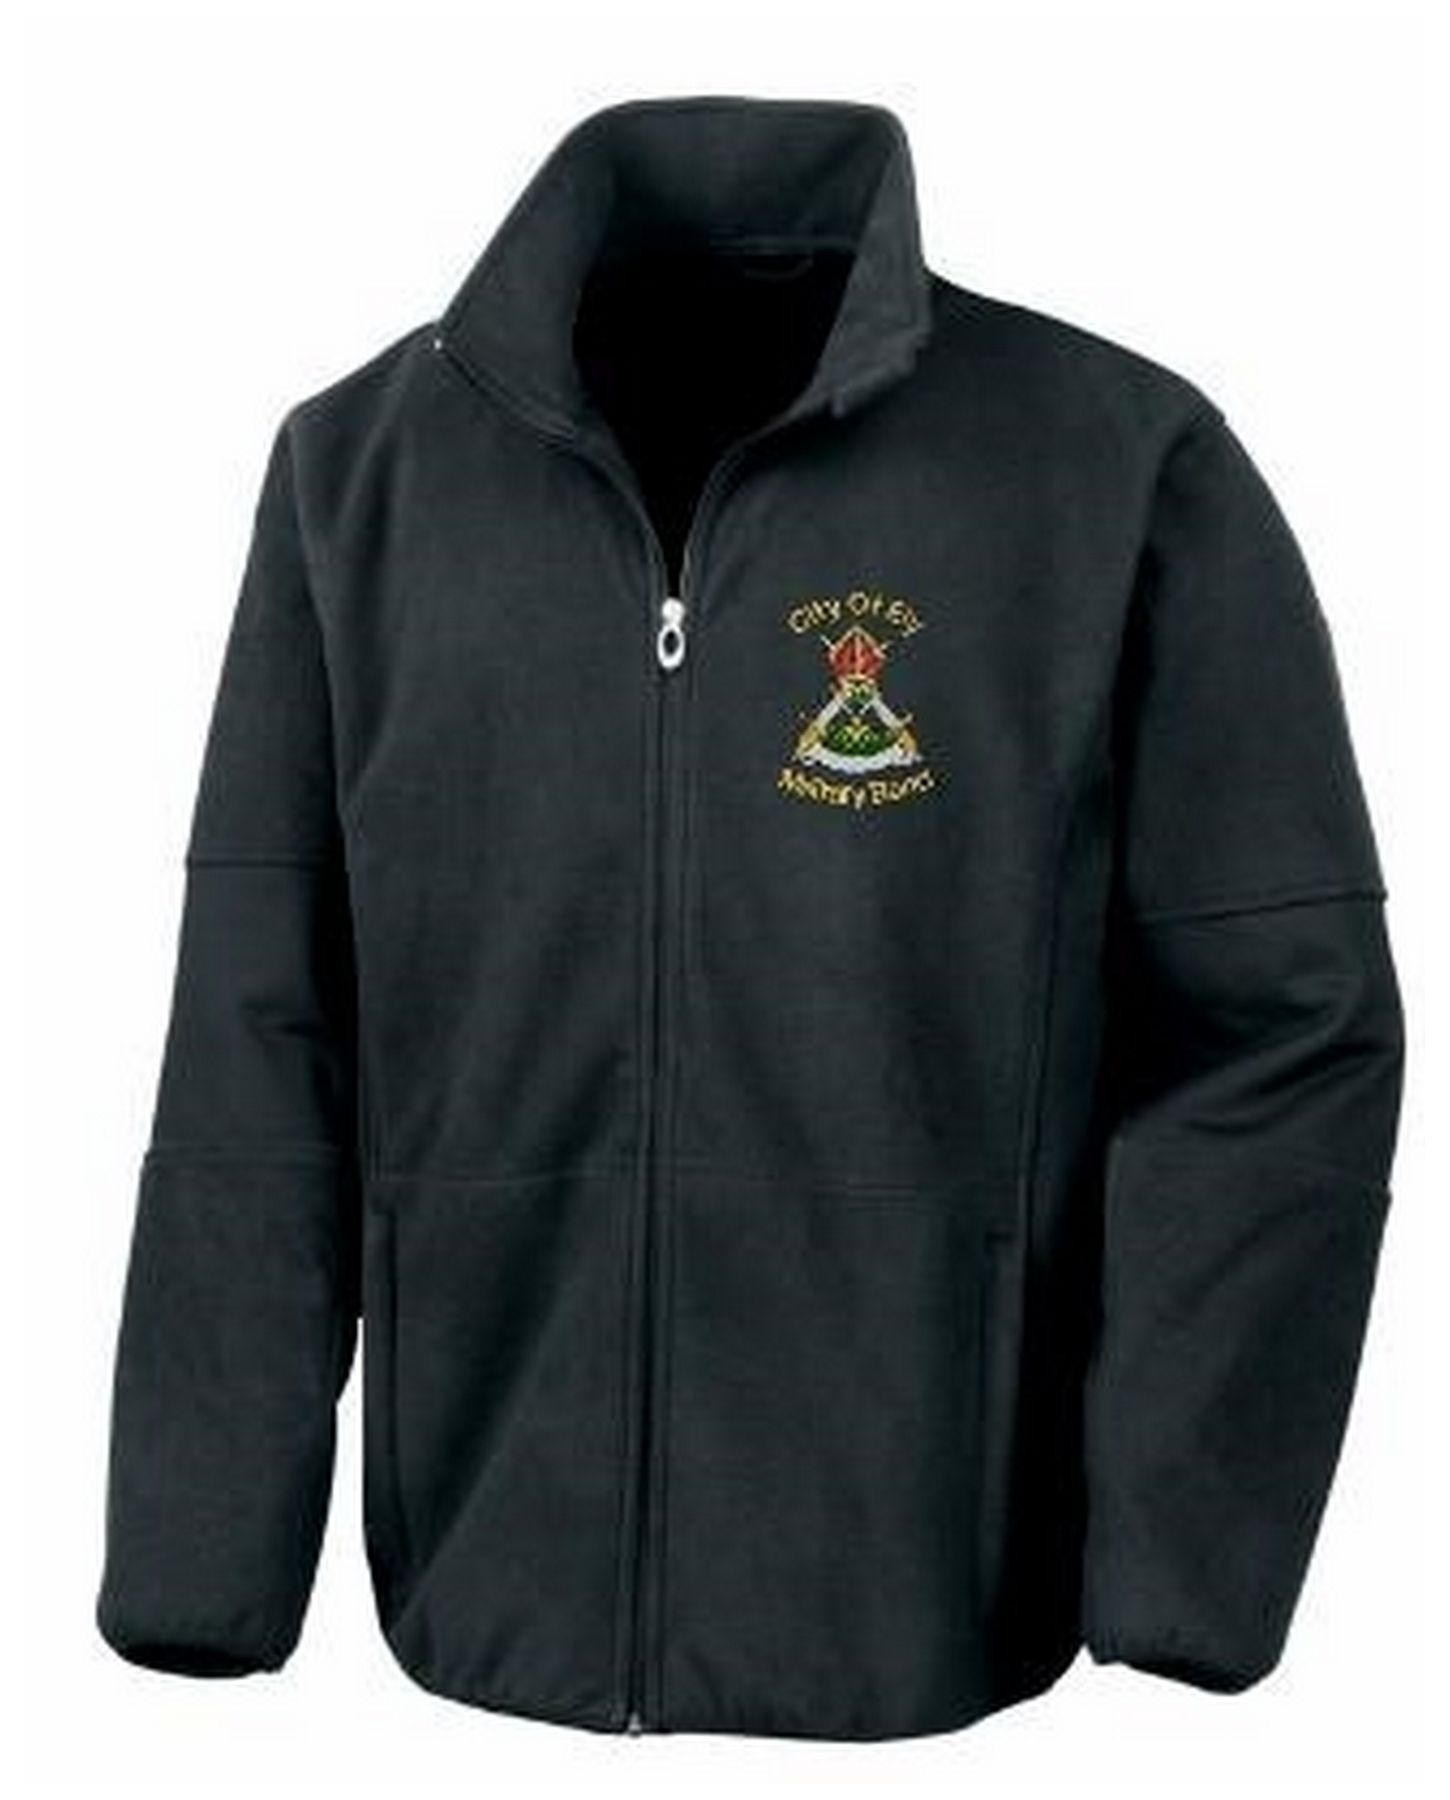 Ely Military Band – Softshell Fleece